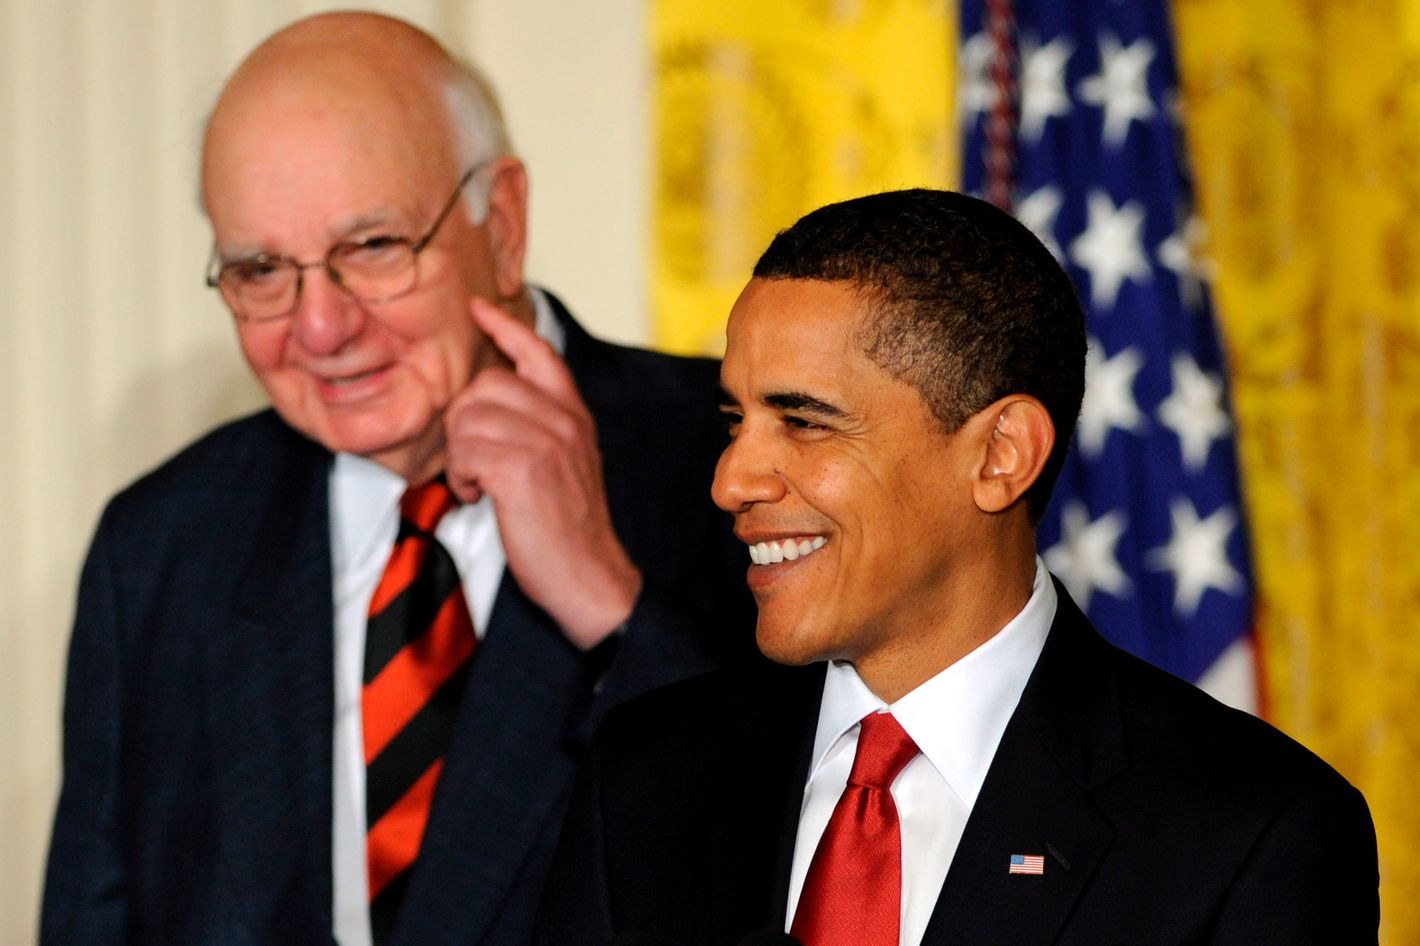 U.S. President Barack Obama (front) and the Chair of his Economic Recovery Advisory Board Paul Volcker, announce the newly appointed members of the advisory board at the White House in Washington, DC, USA on 06 February 2009. The board made up of business leaders, labor groups and former government officials will provide an outside perspective on Obama's economic recovery plans.